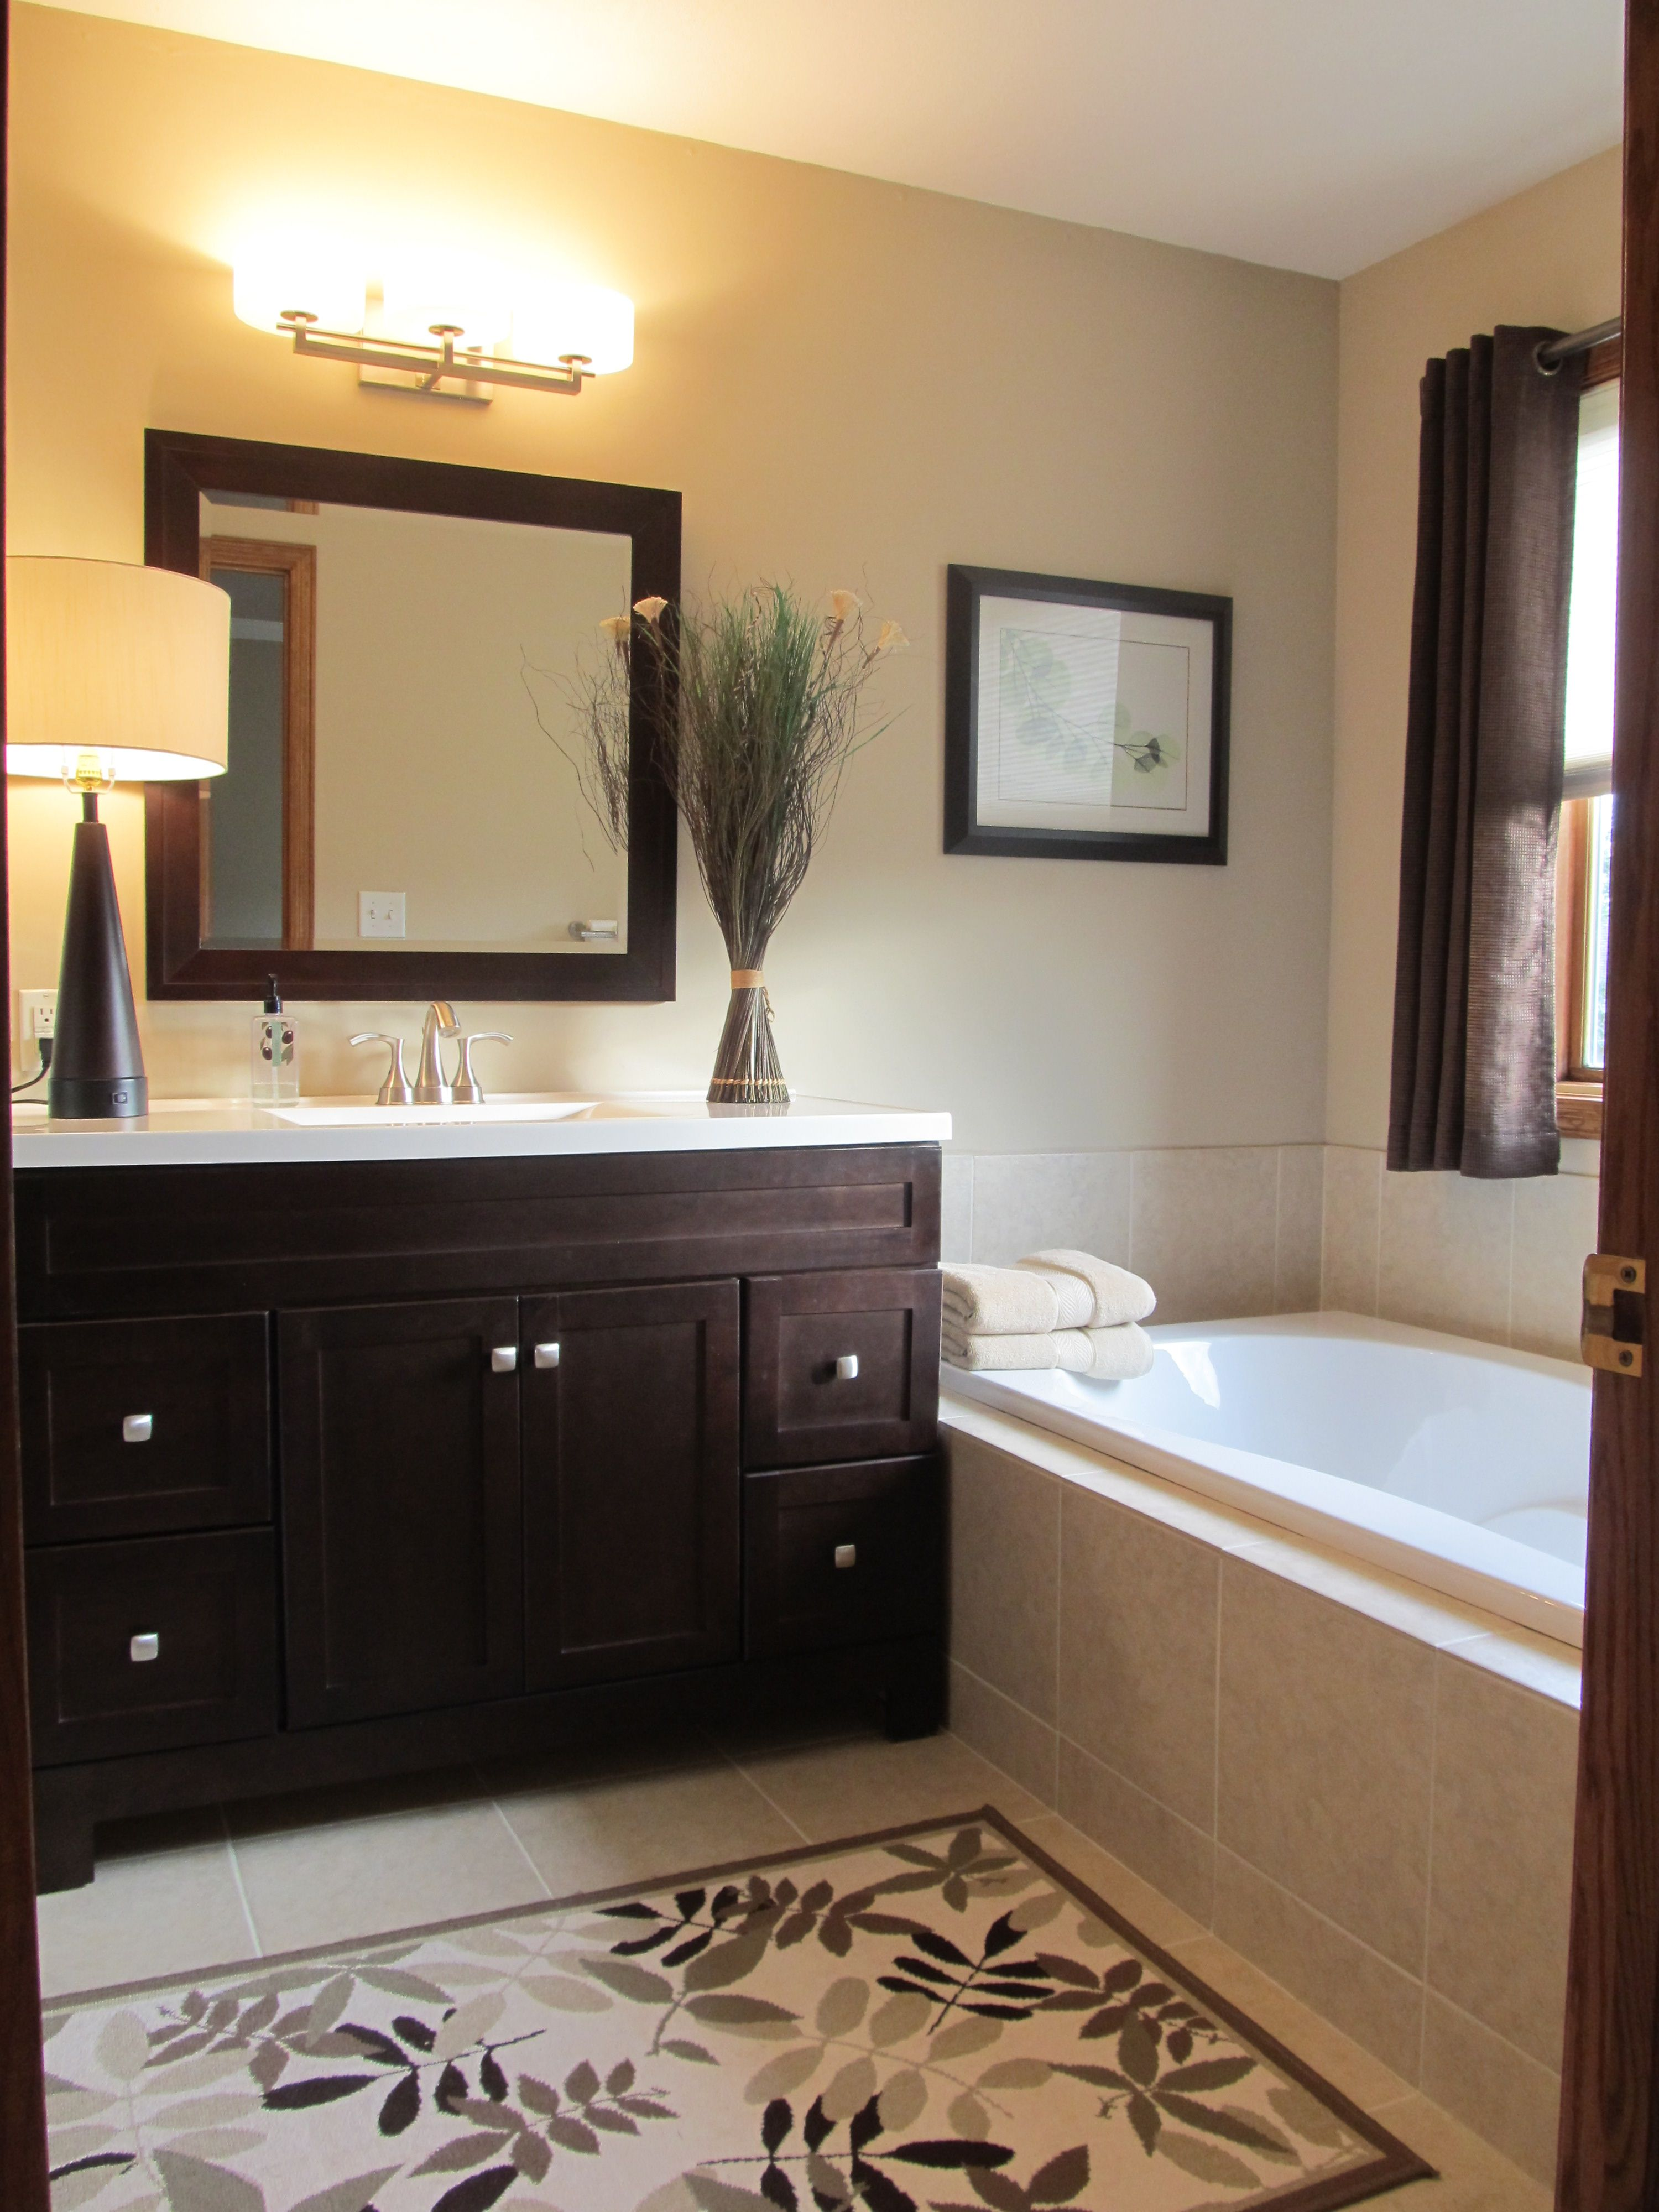 My Bathroom Colors For The Walls, Trim And Cabinet: Grey Walls, White  Counter, Dark Cabinets  Inside The Home  Pinterest  White Counters, Wall  Trim And